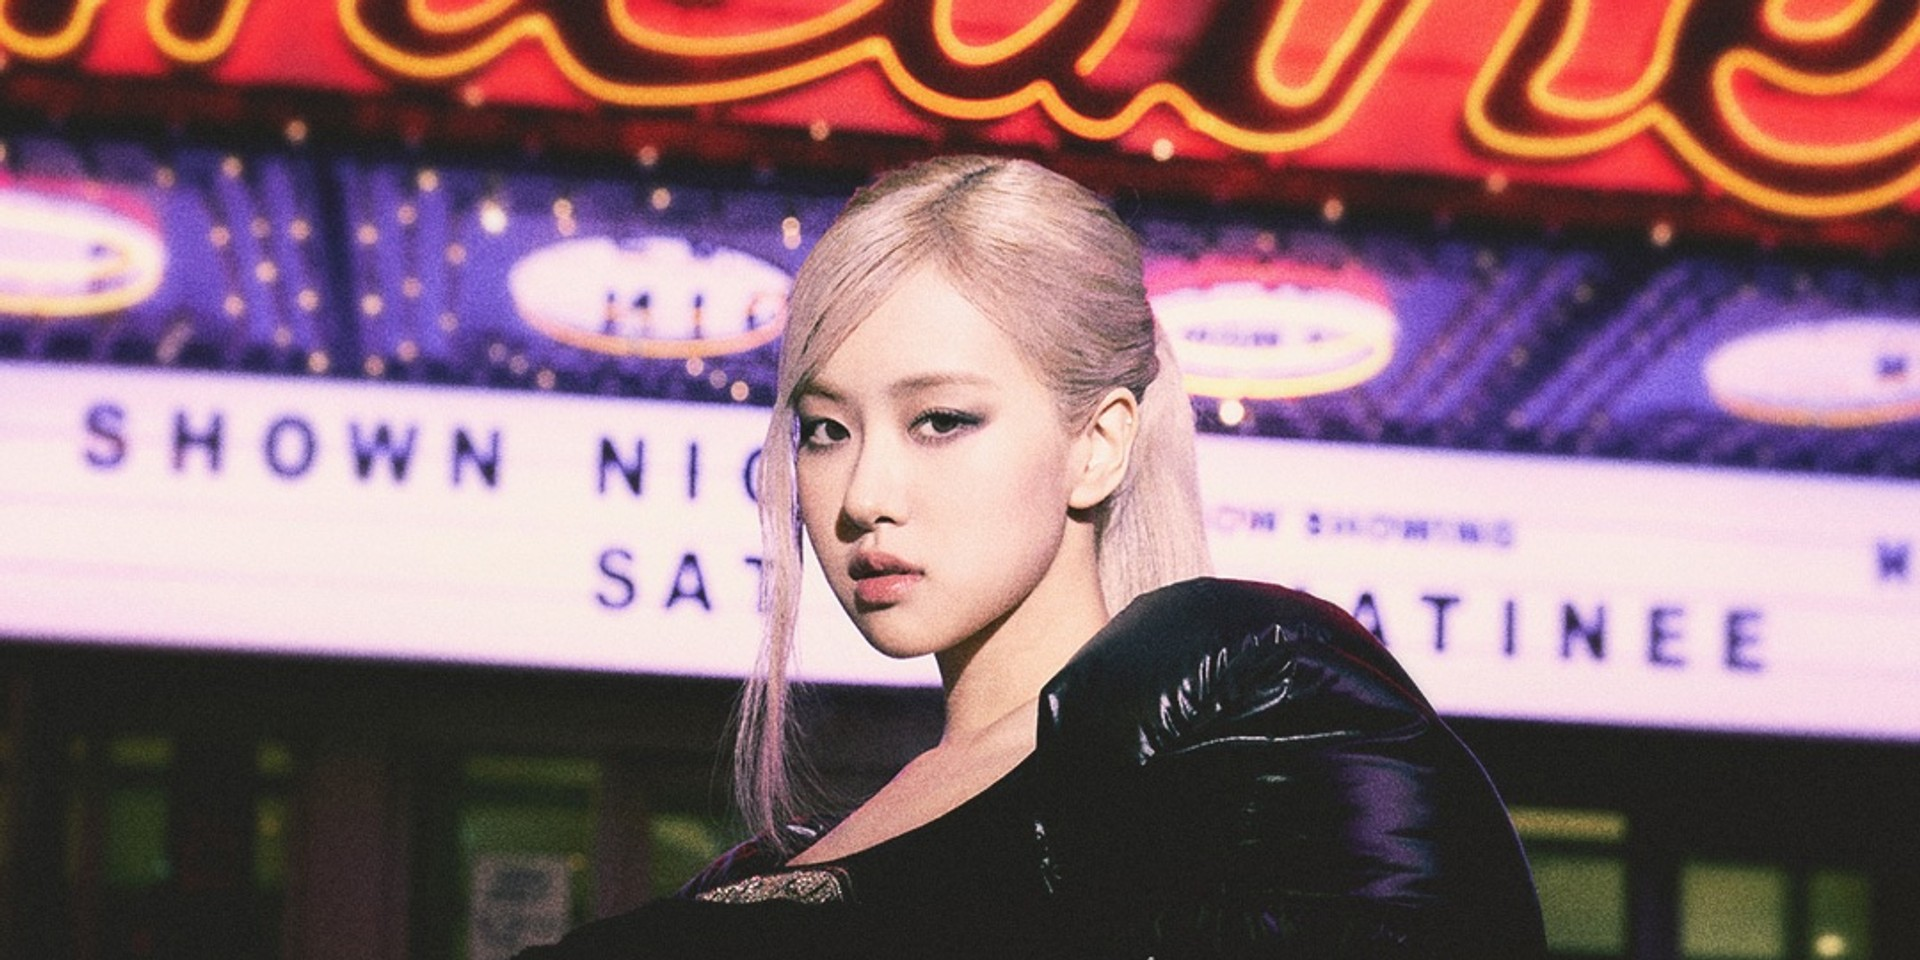 BLACKPINK's ROSÉ to hold comeback show and perform on The Tonight Show Starring Jimmy Fallon